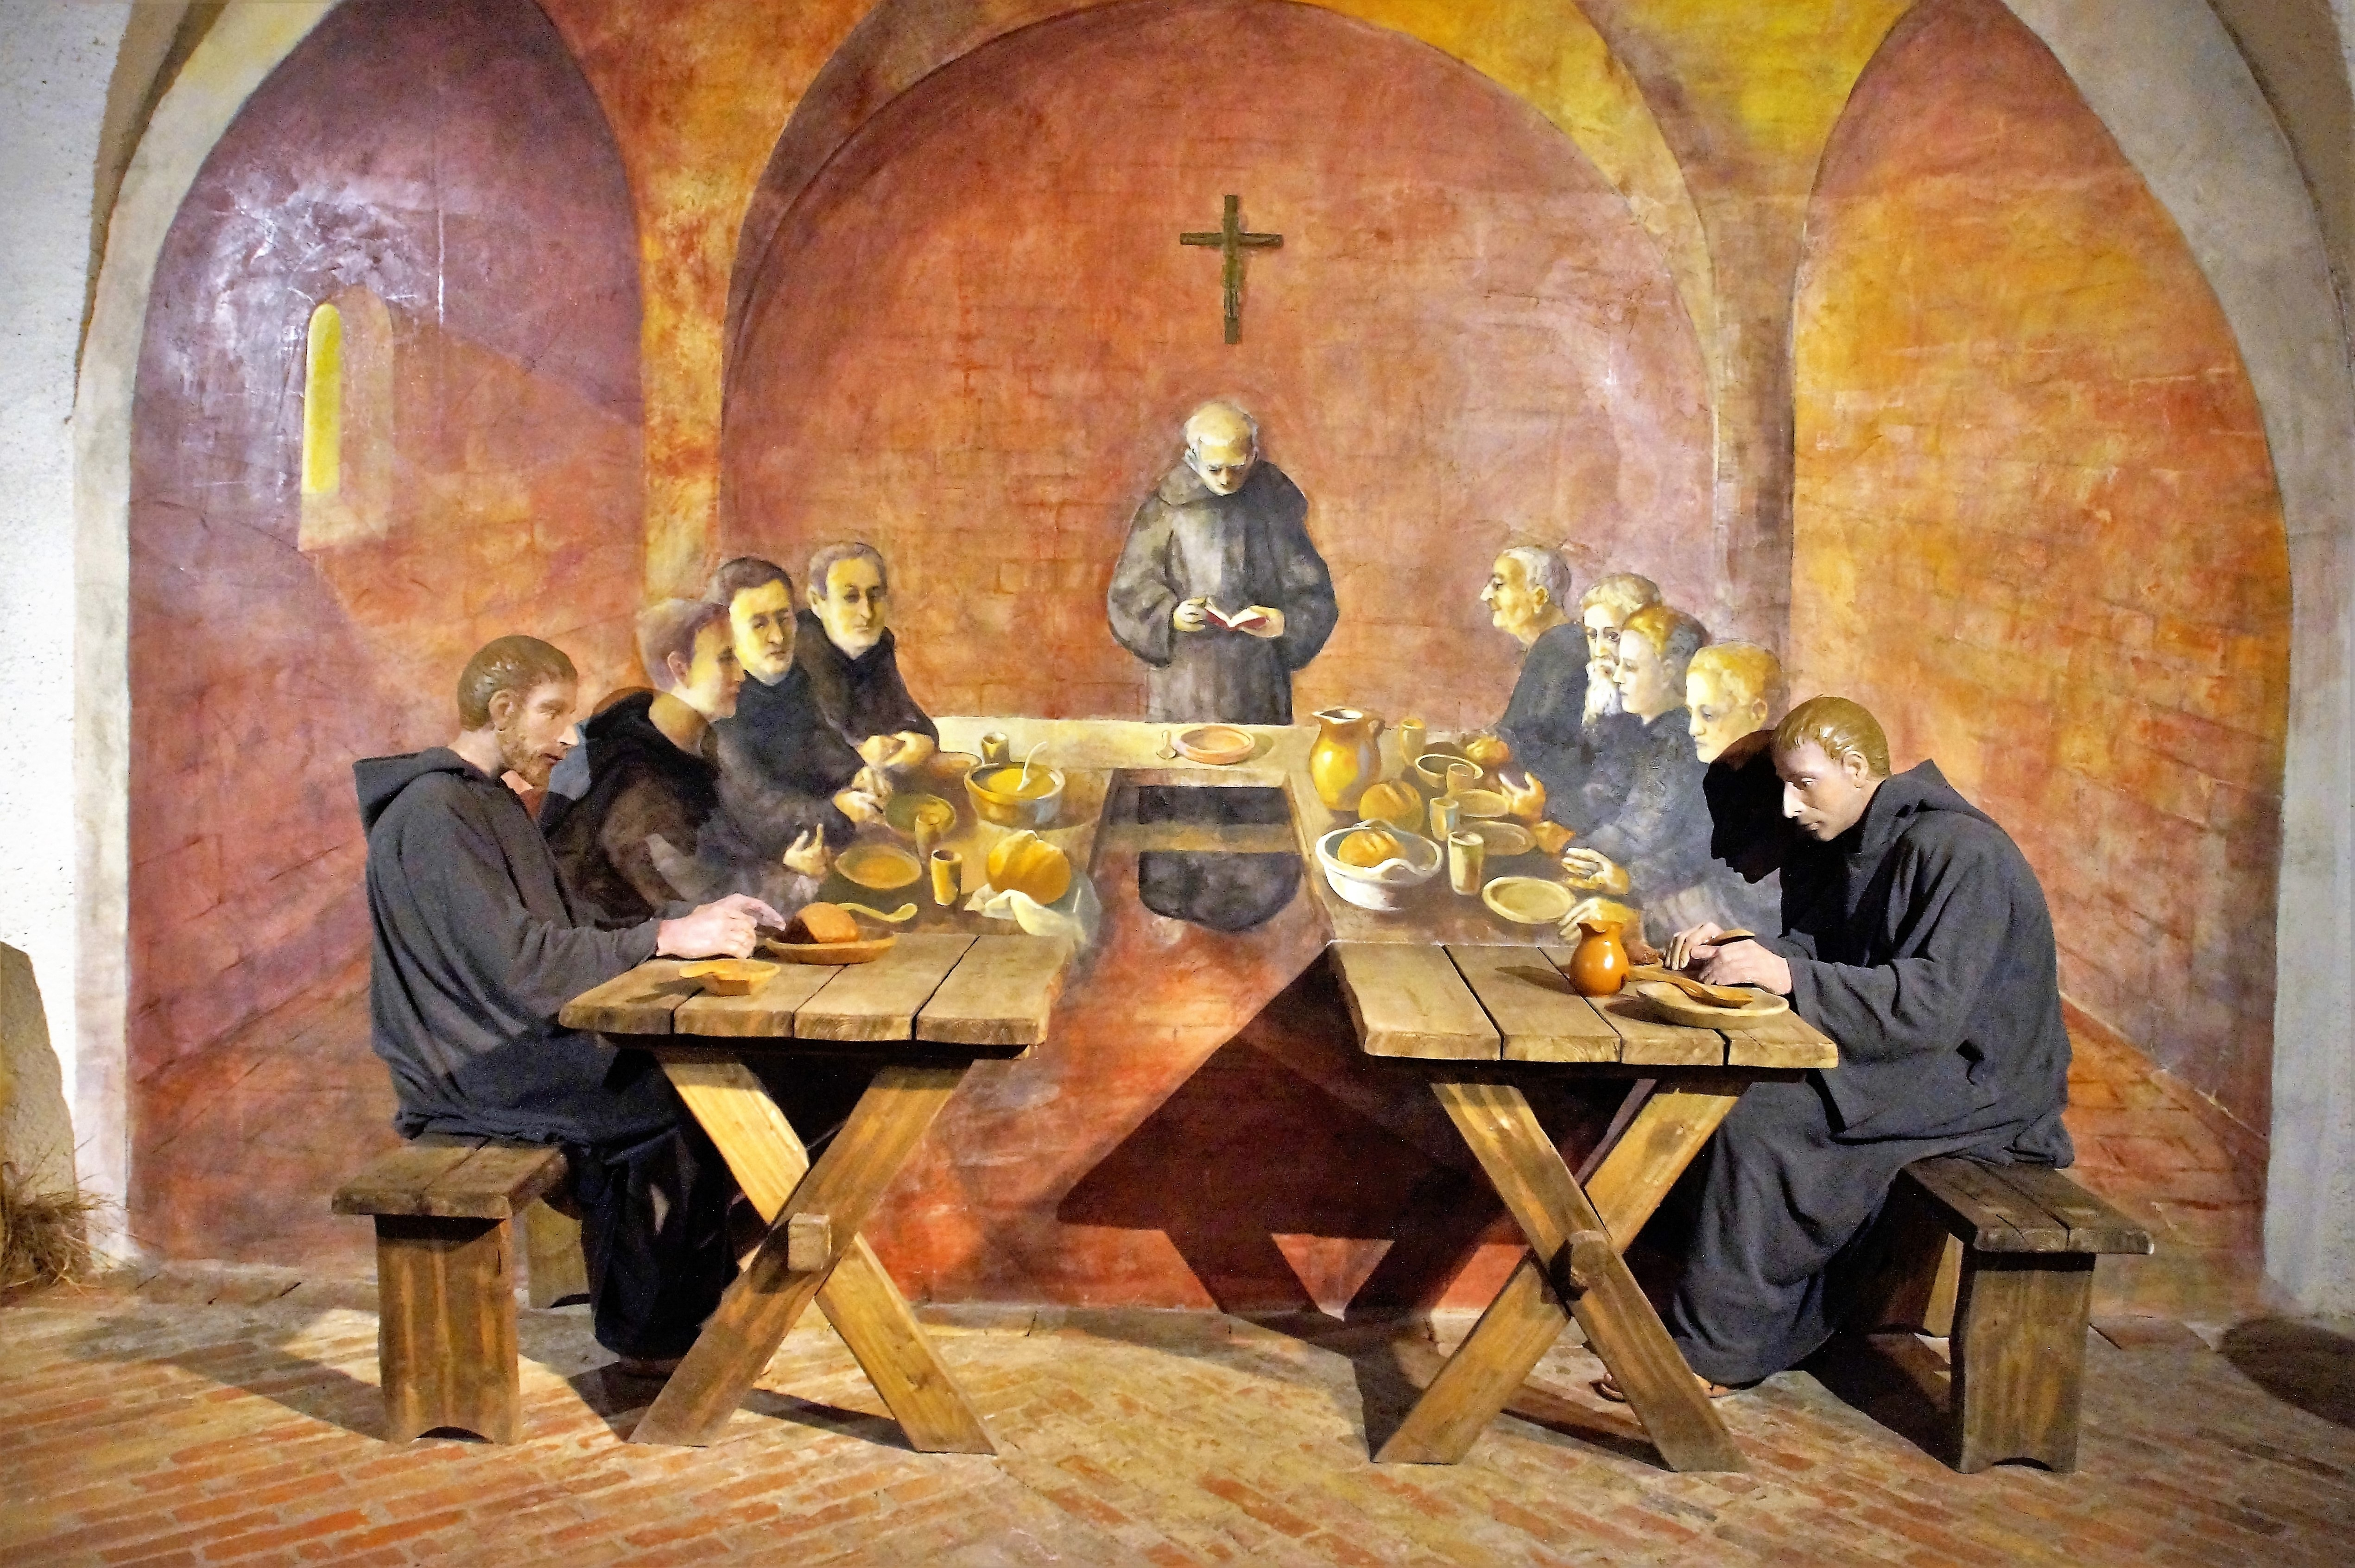 chapel-tourism-painting-art-dinner-monastery-image-abbey-tihany-the-monks-the-monk-man-made-object-ancient-history-558121.jpg